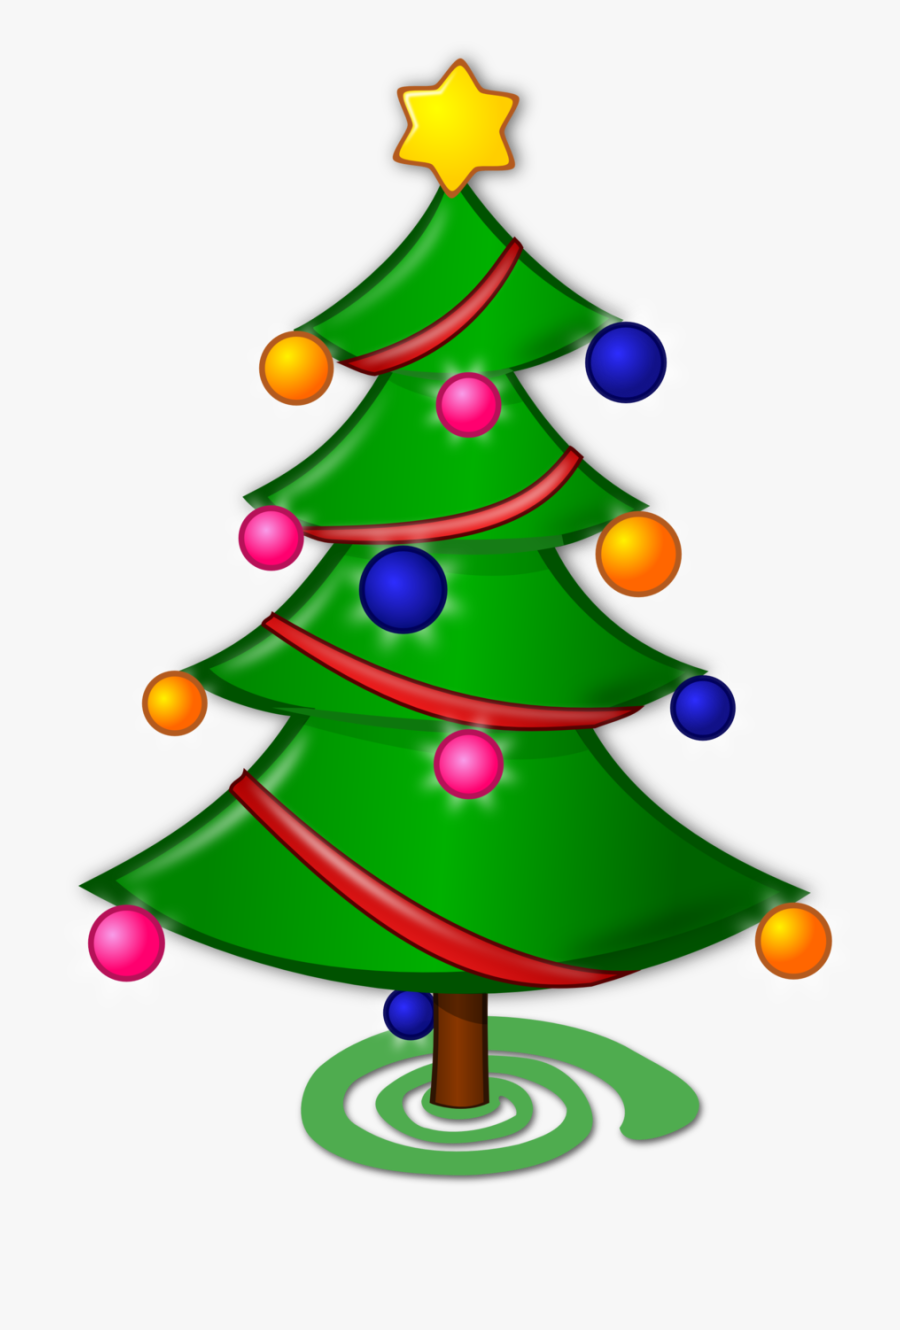 Merry Christmas Tree Drawing, Transparent Clipart